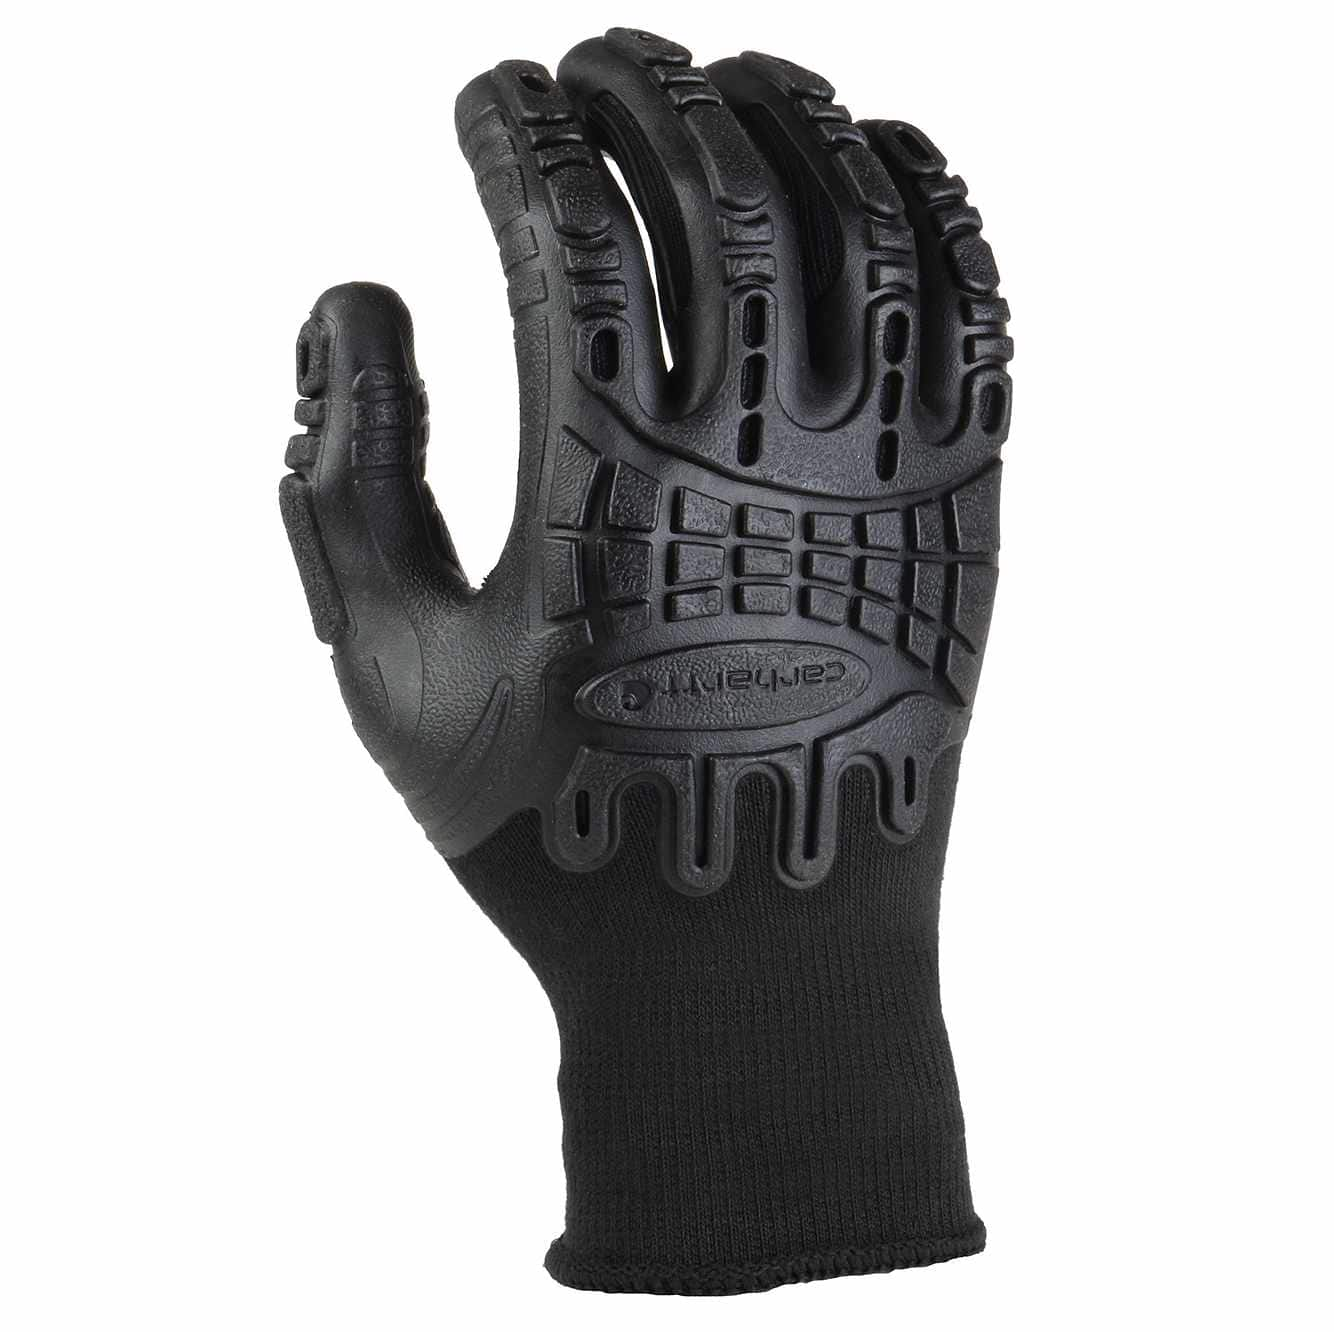 Picture of Impact C-Grip® Glove in Black